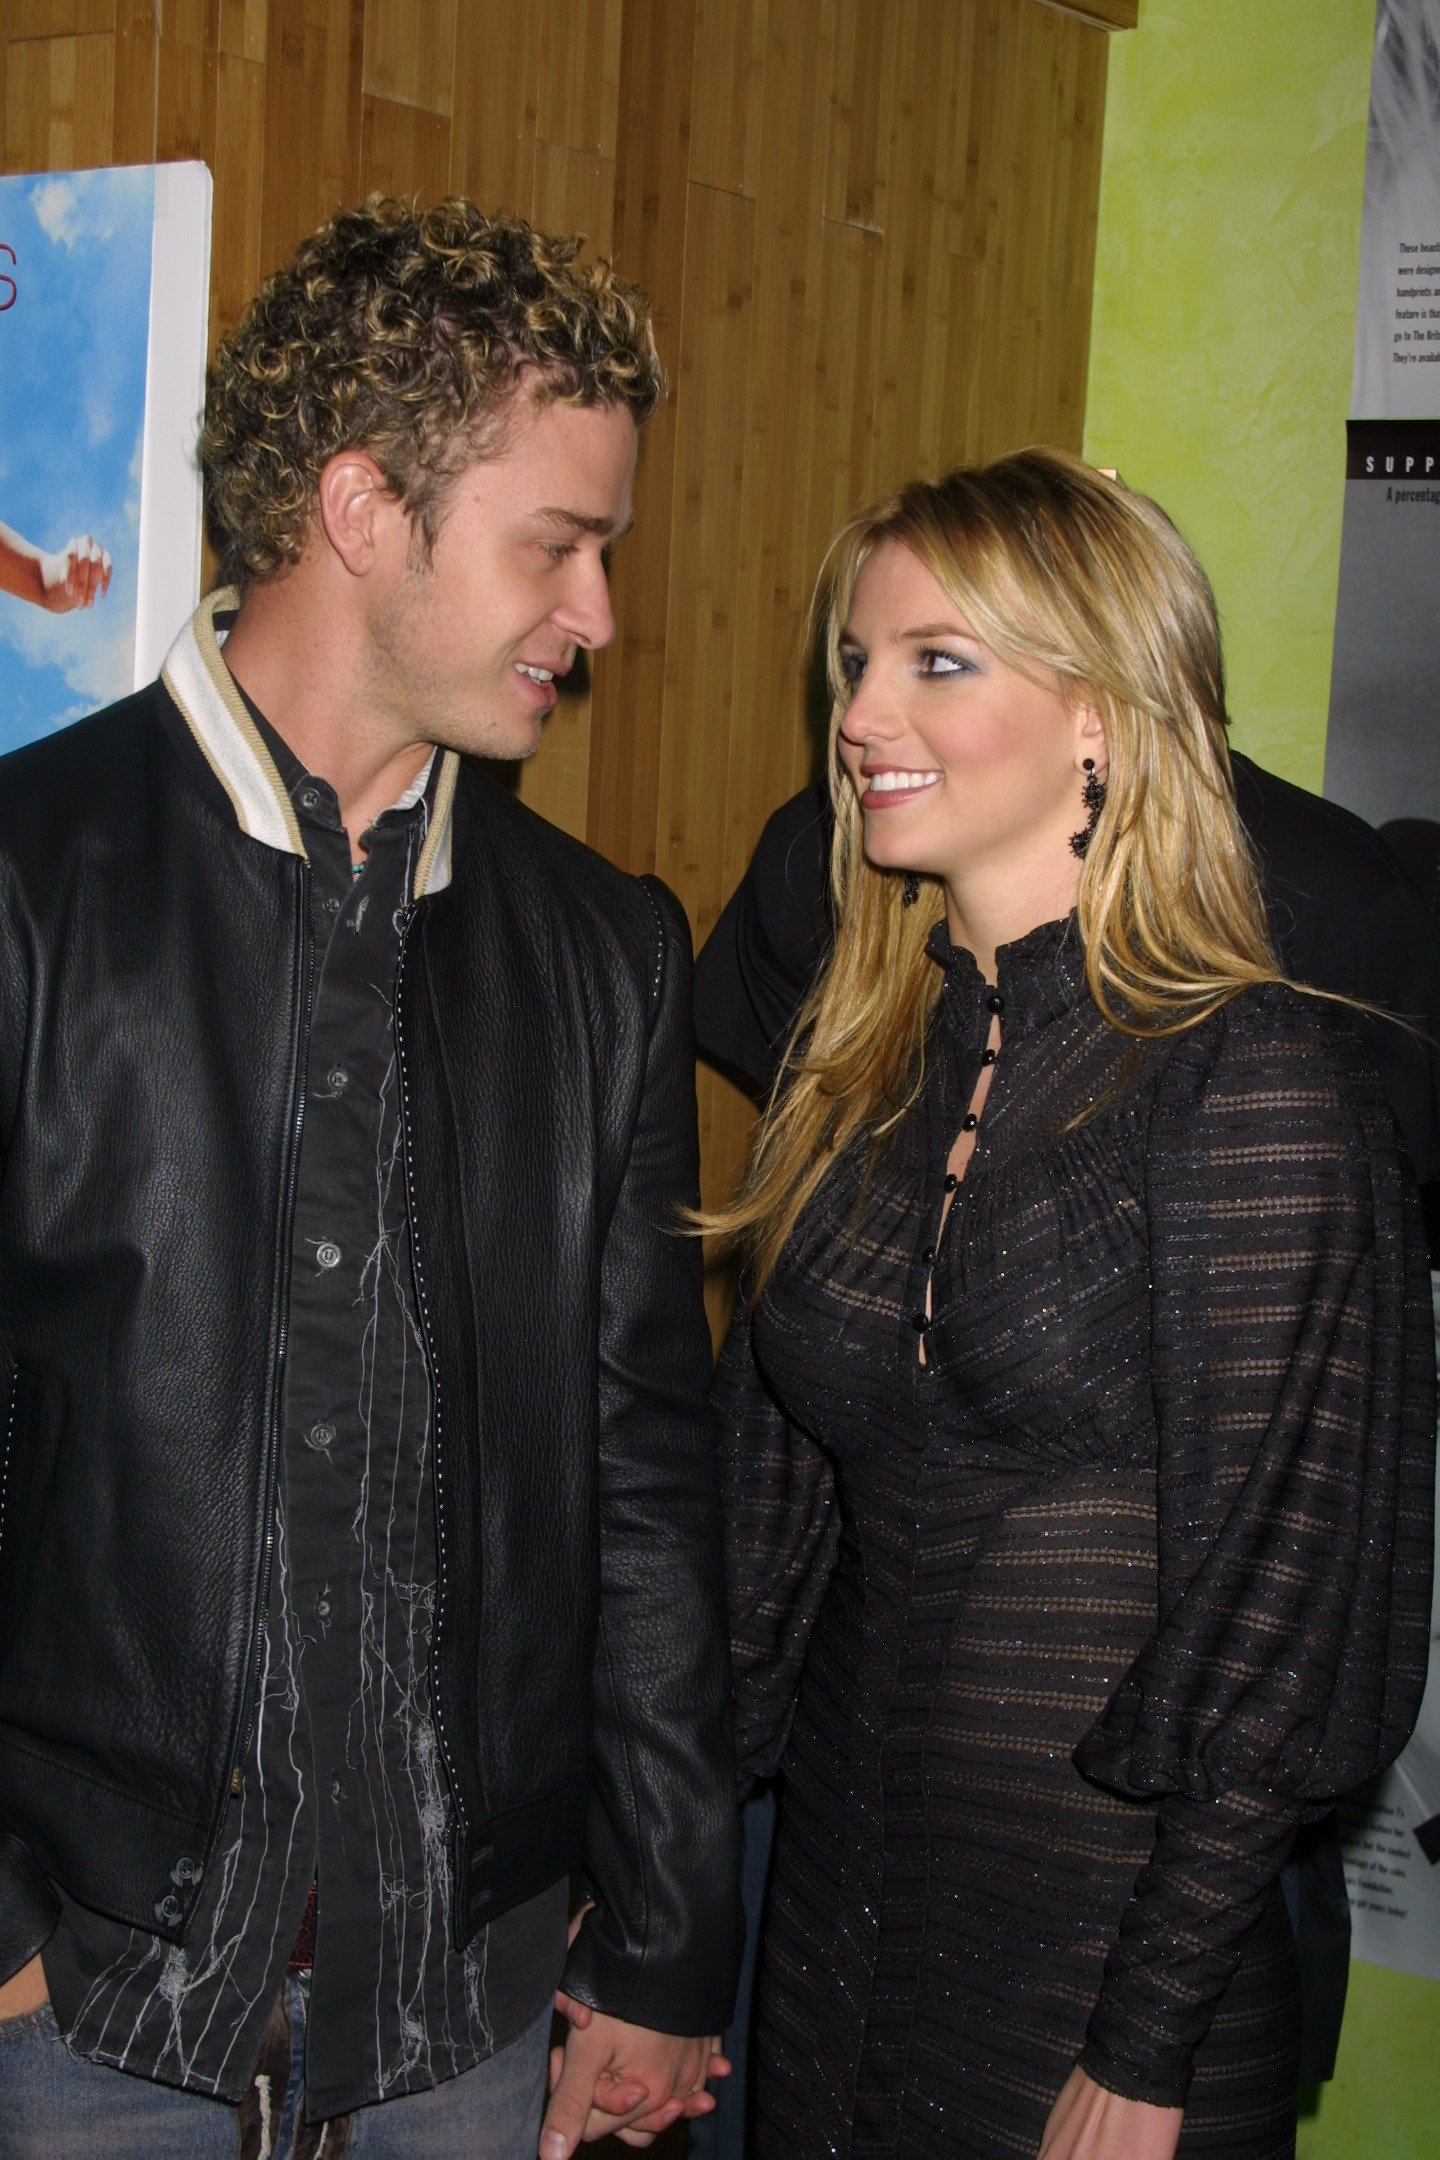 Justin Timberlake and Britney Spears on Feb. 13, 2002.